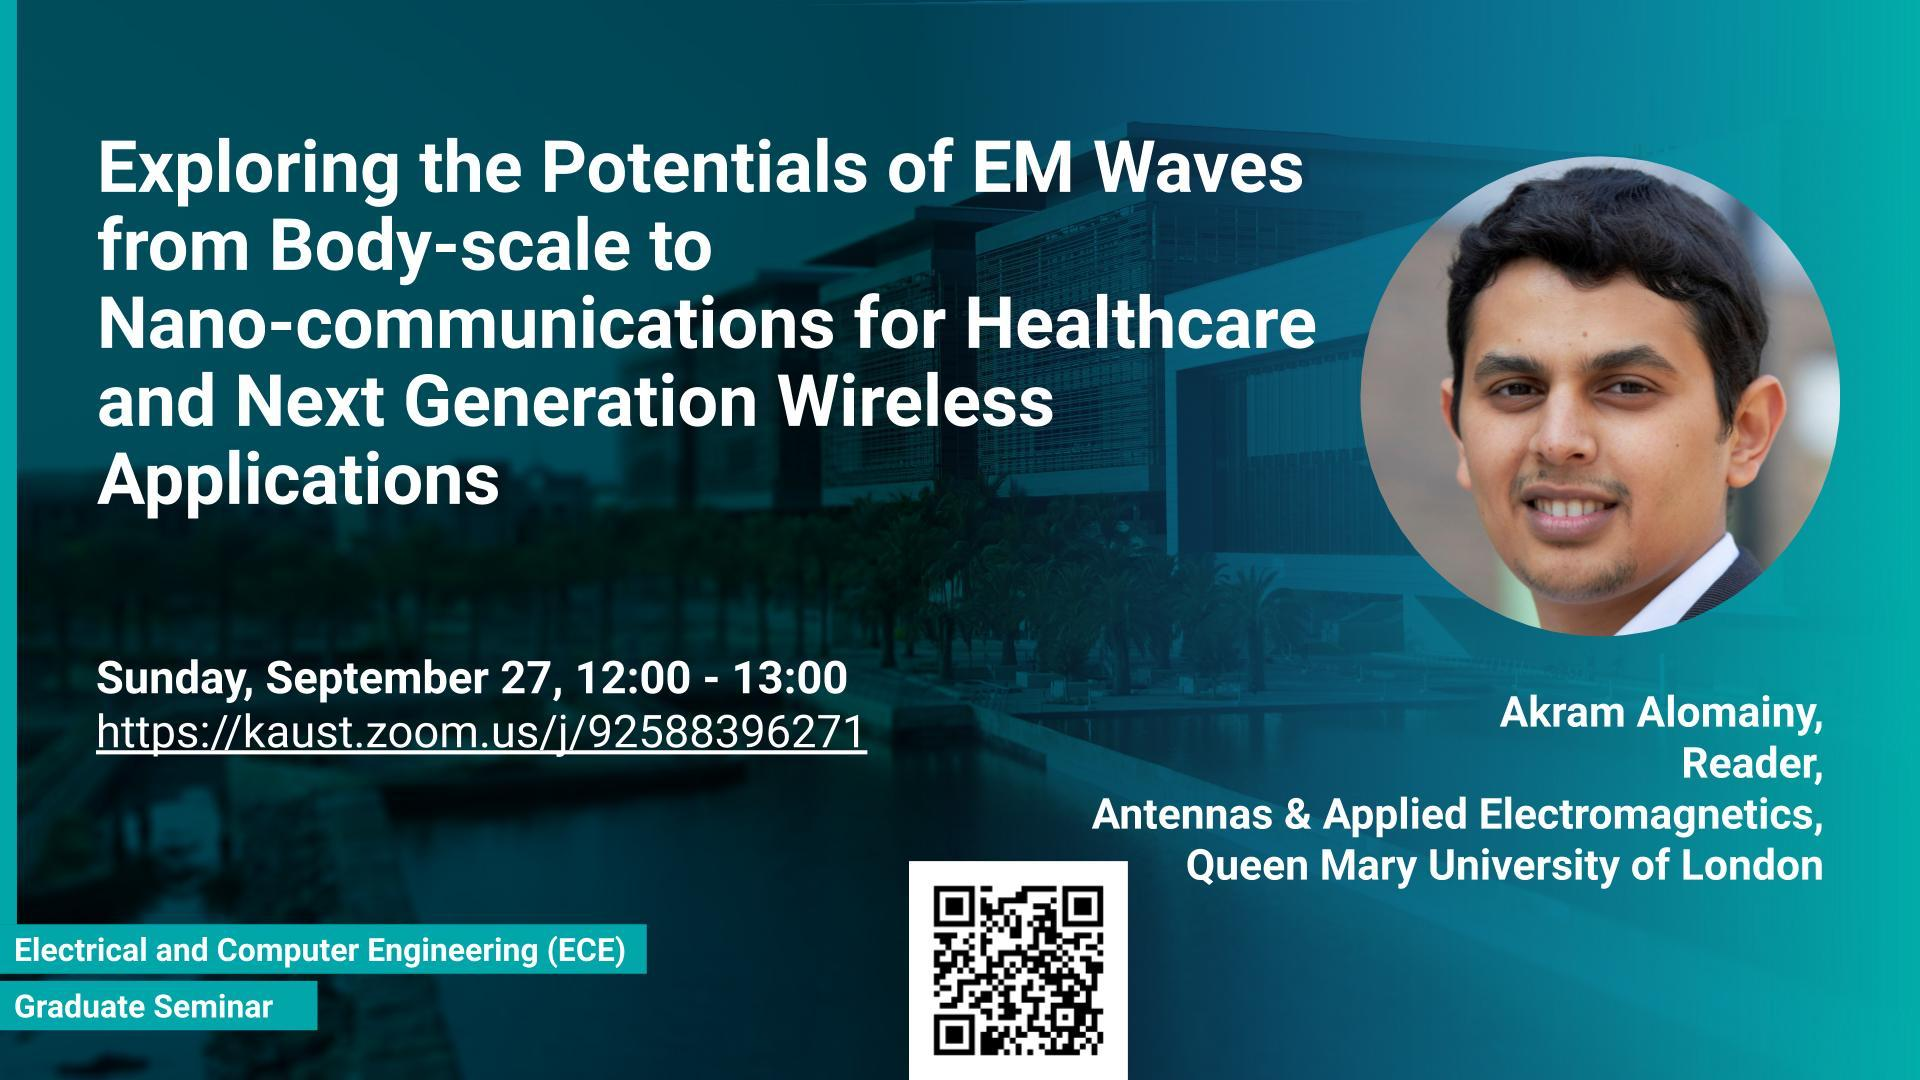 KAUST-CEMSE ECE Graduate Seminar Akram Alomainy EM-Waves Bodyscale Nano-communications Healthcare Wireless